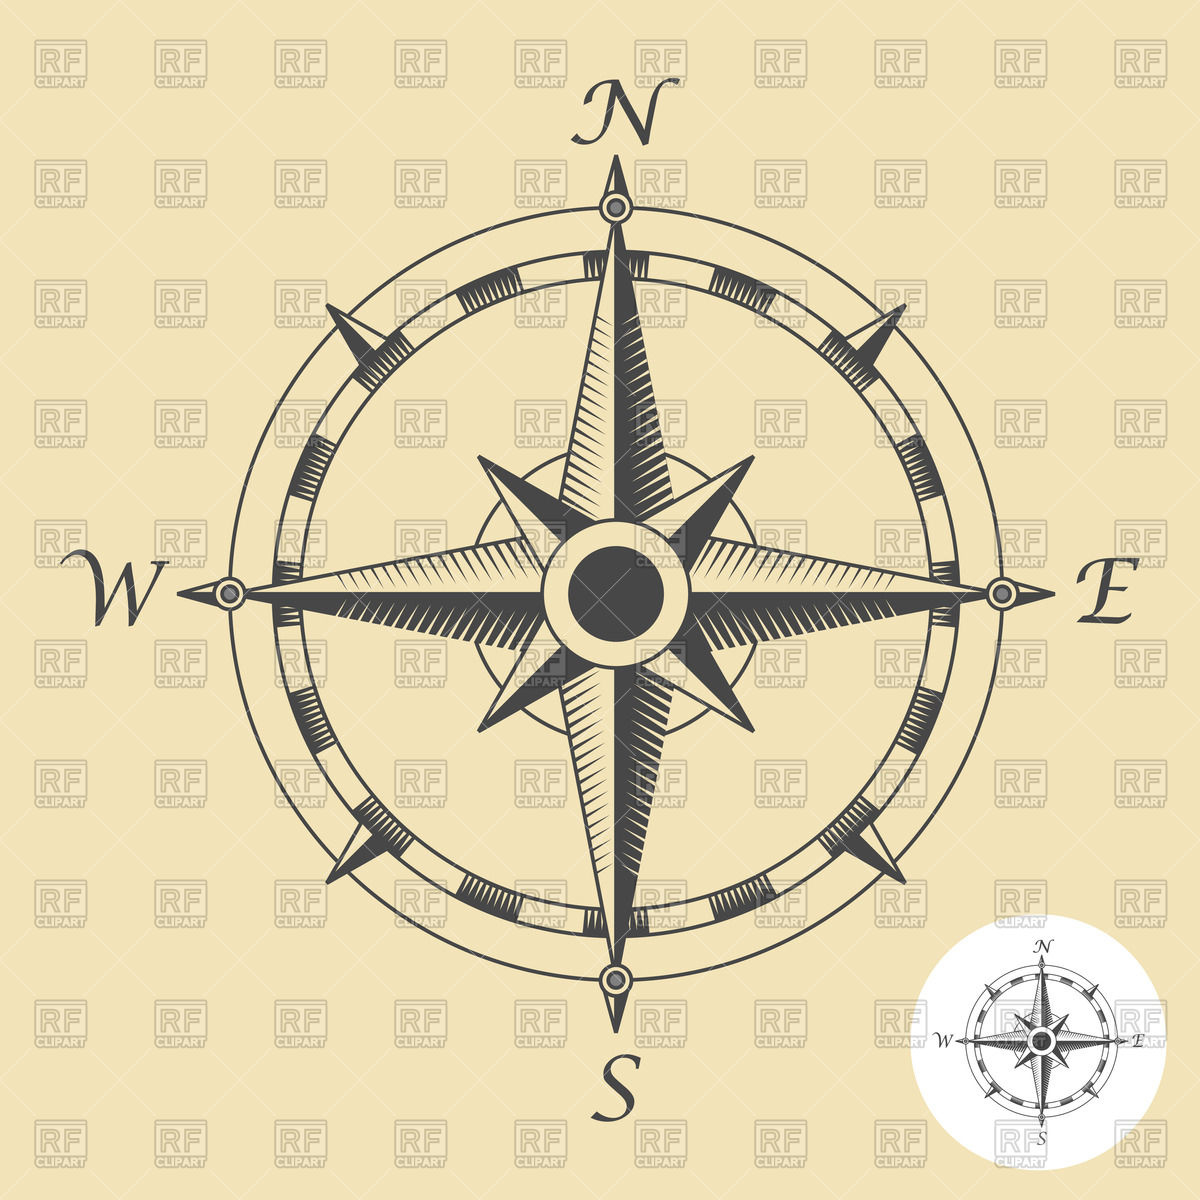 1200x1200 vintagw map compass clipart 1200x1200 vintagw map compass clipart 325x452 antique compass drawing